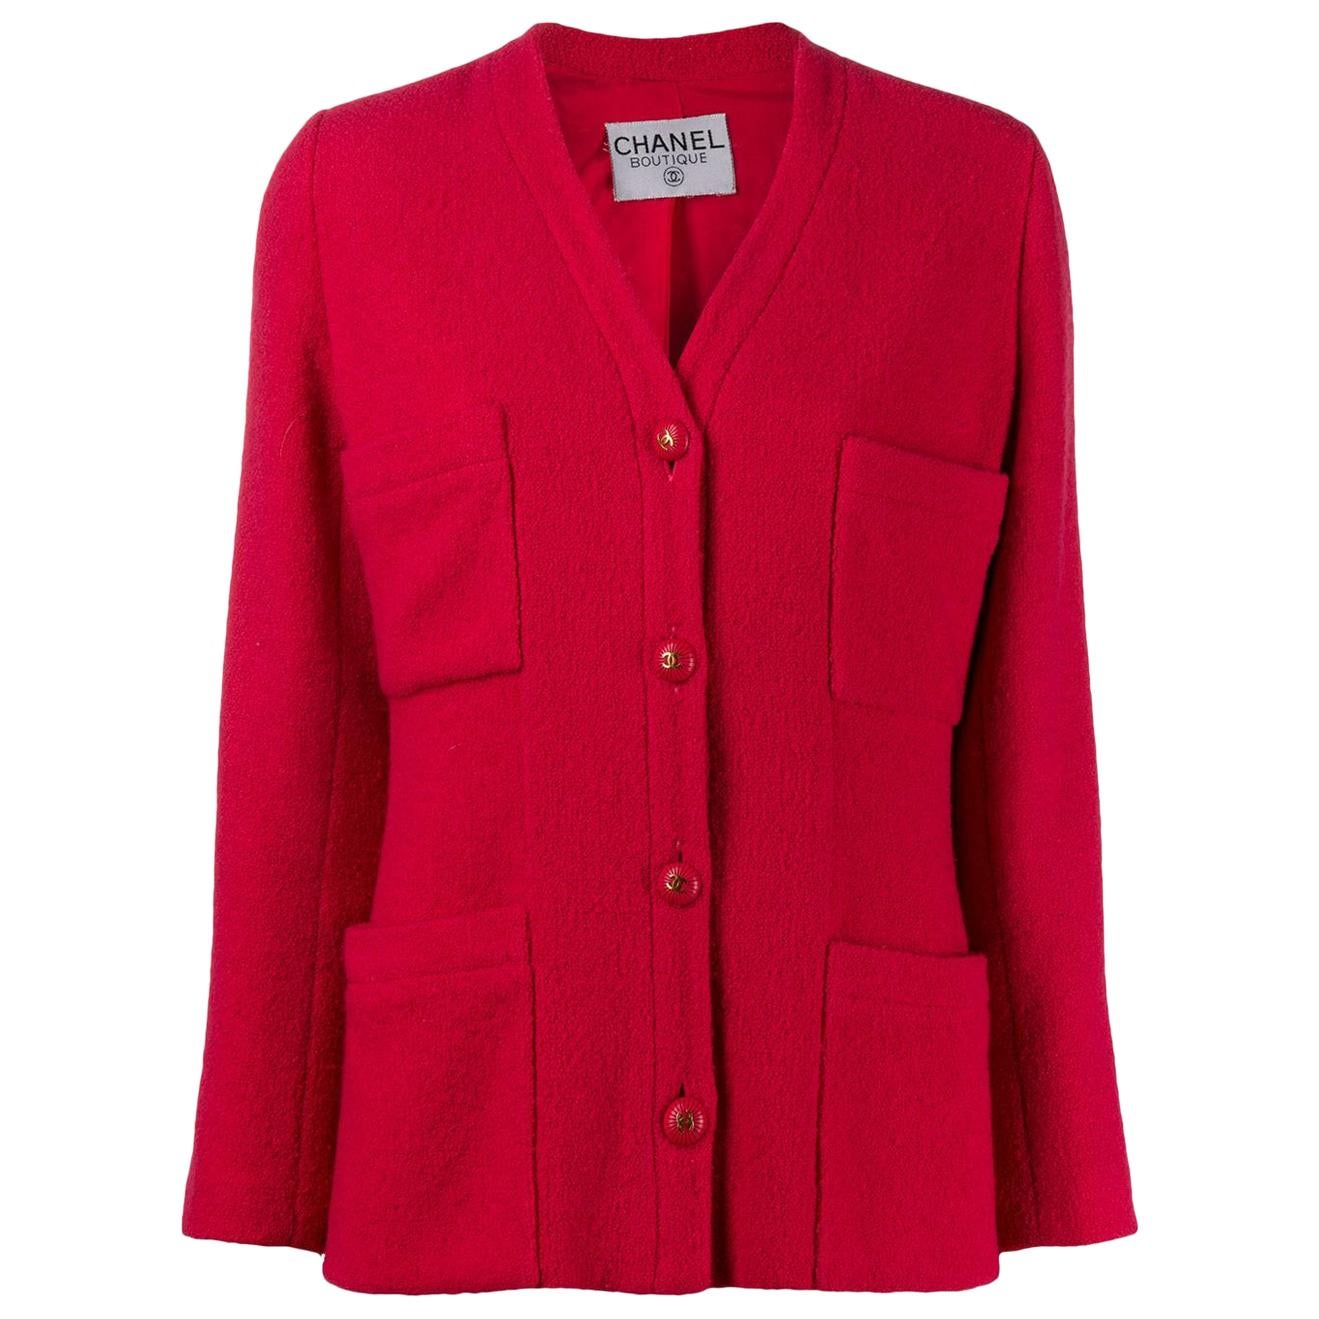 Chanel Red Strawberry Boucle Tweed Jacket